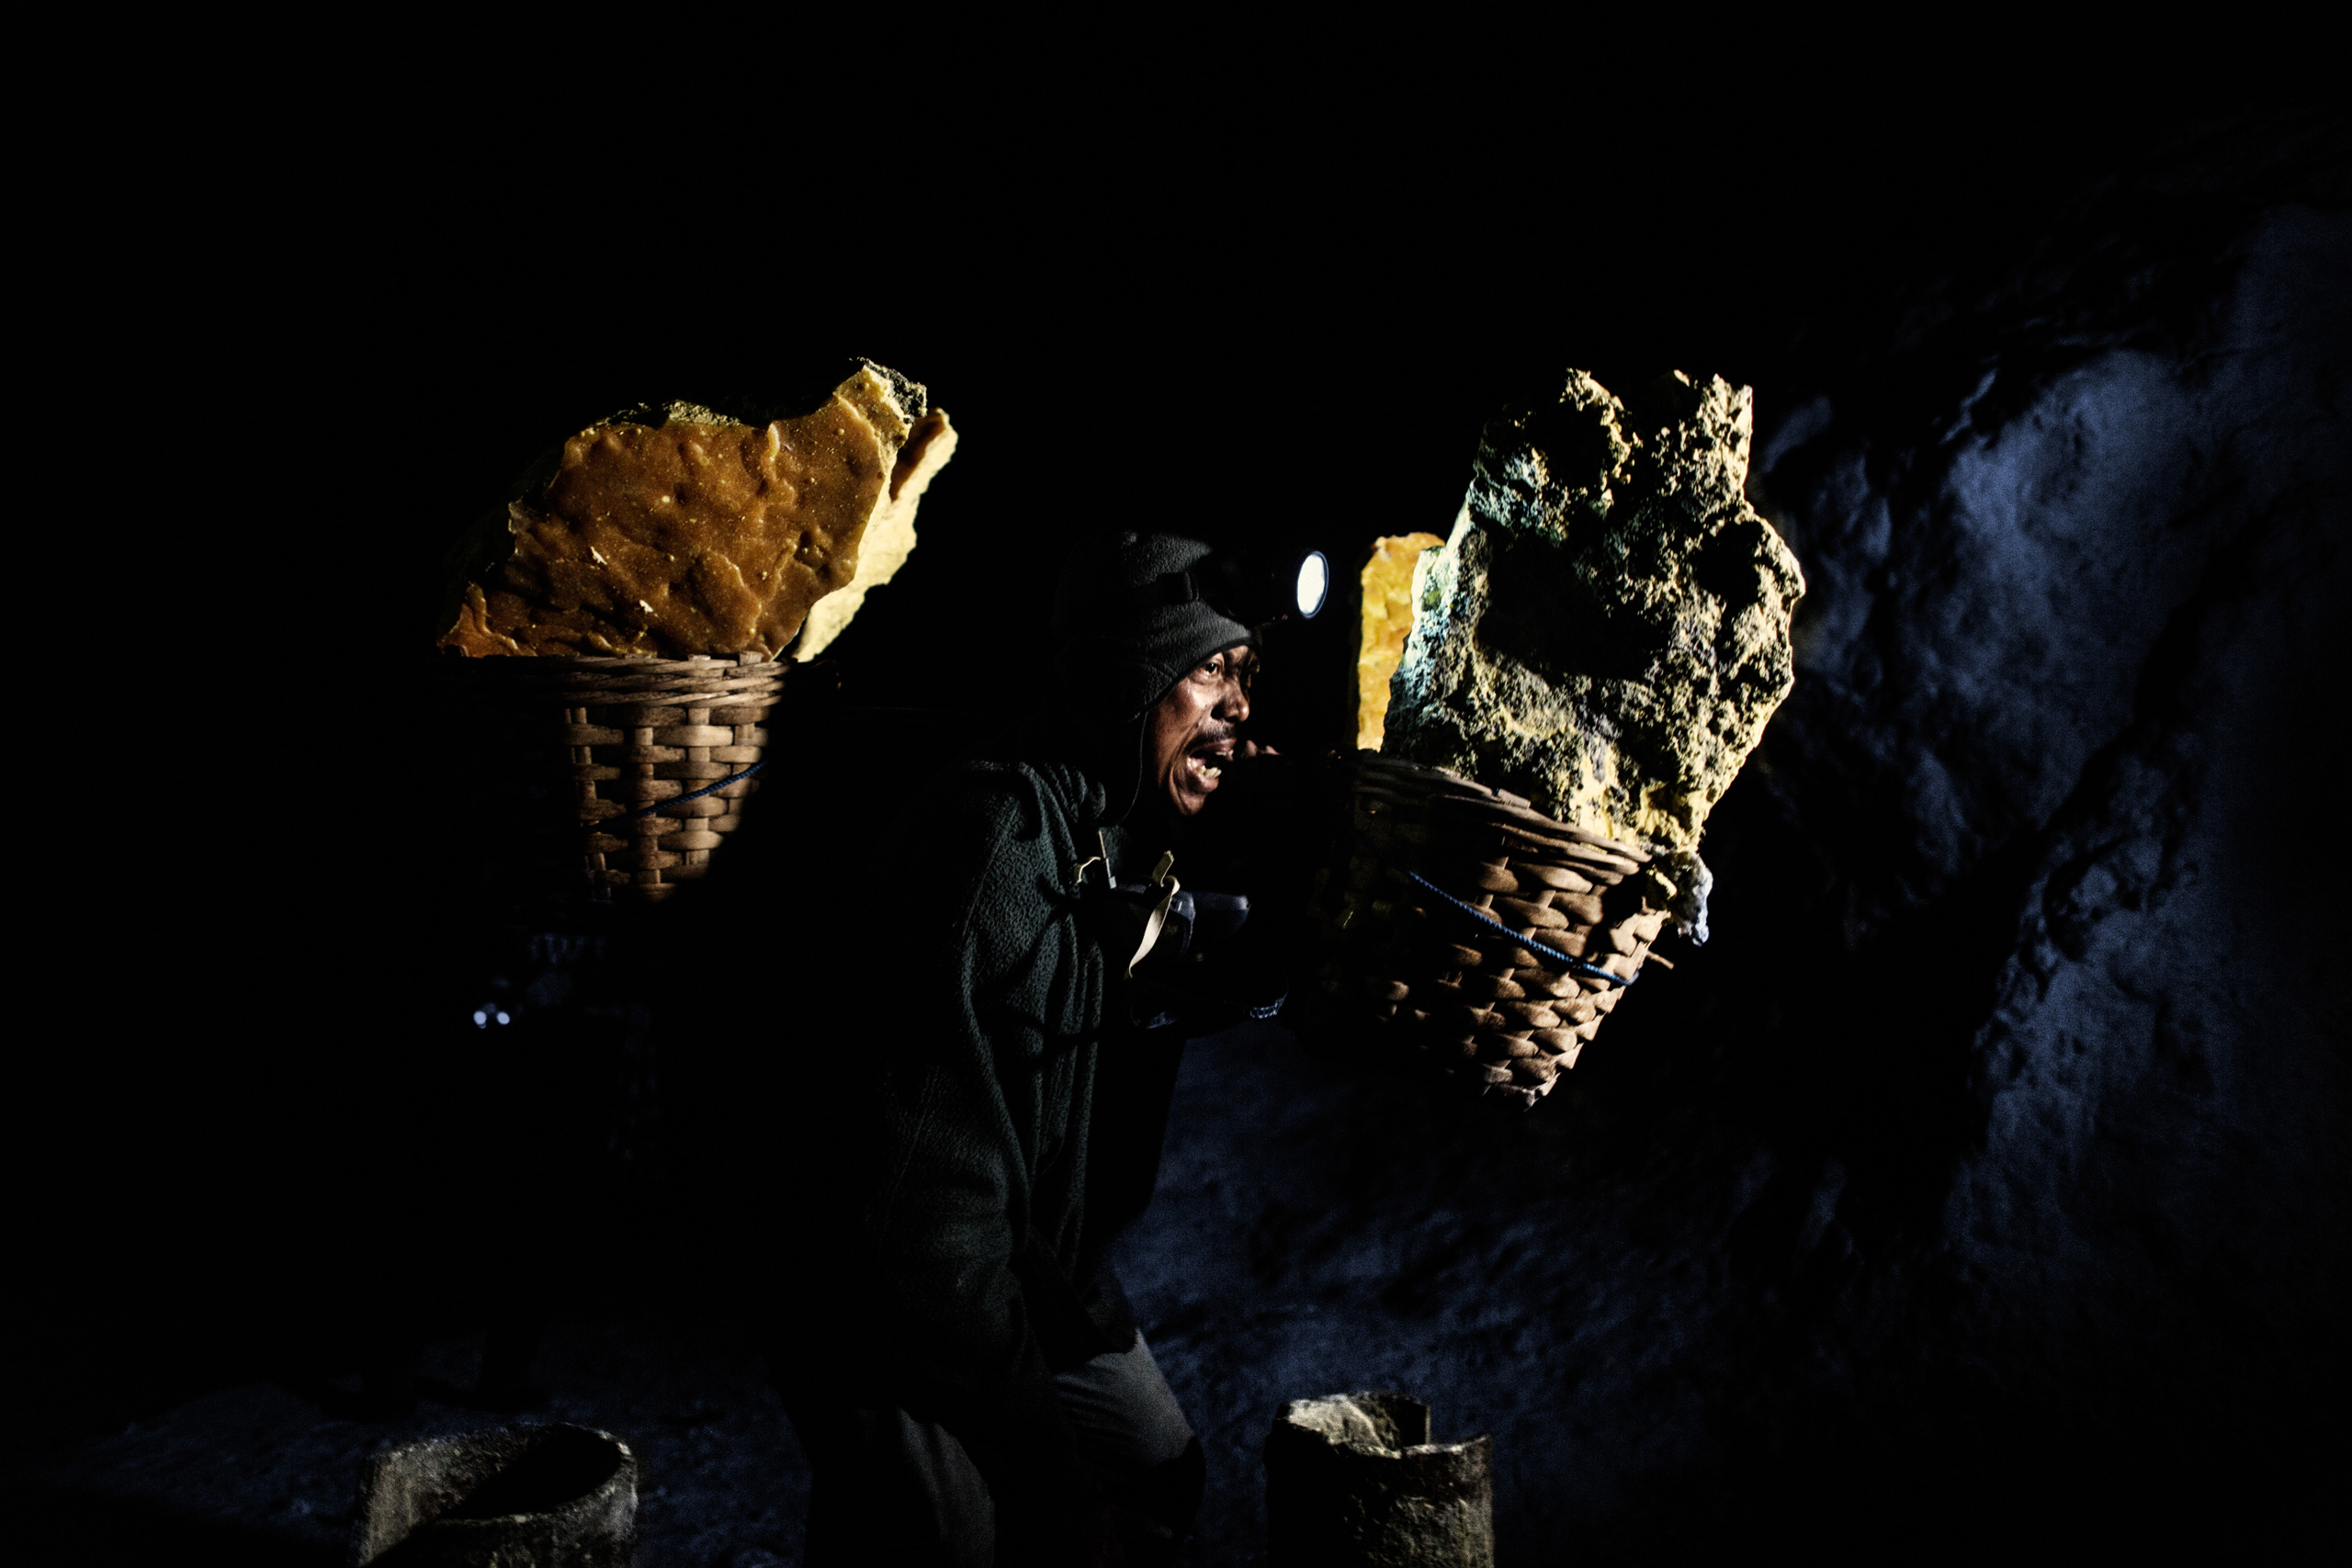 Matsari, 39, a sulfur miner for 10 years, carries the fully loaded baskets on his shoulders,  Nov. 2, 2014.